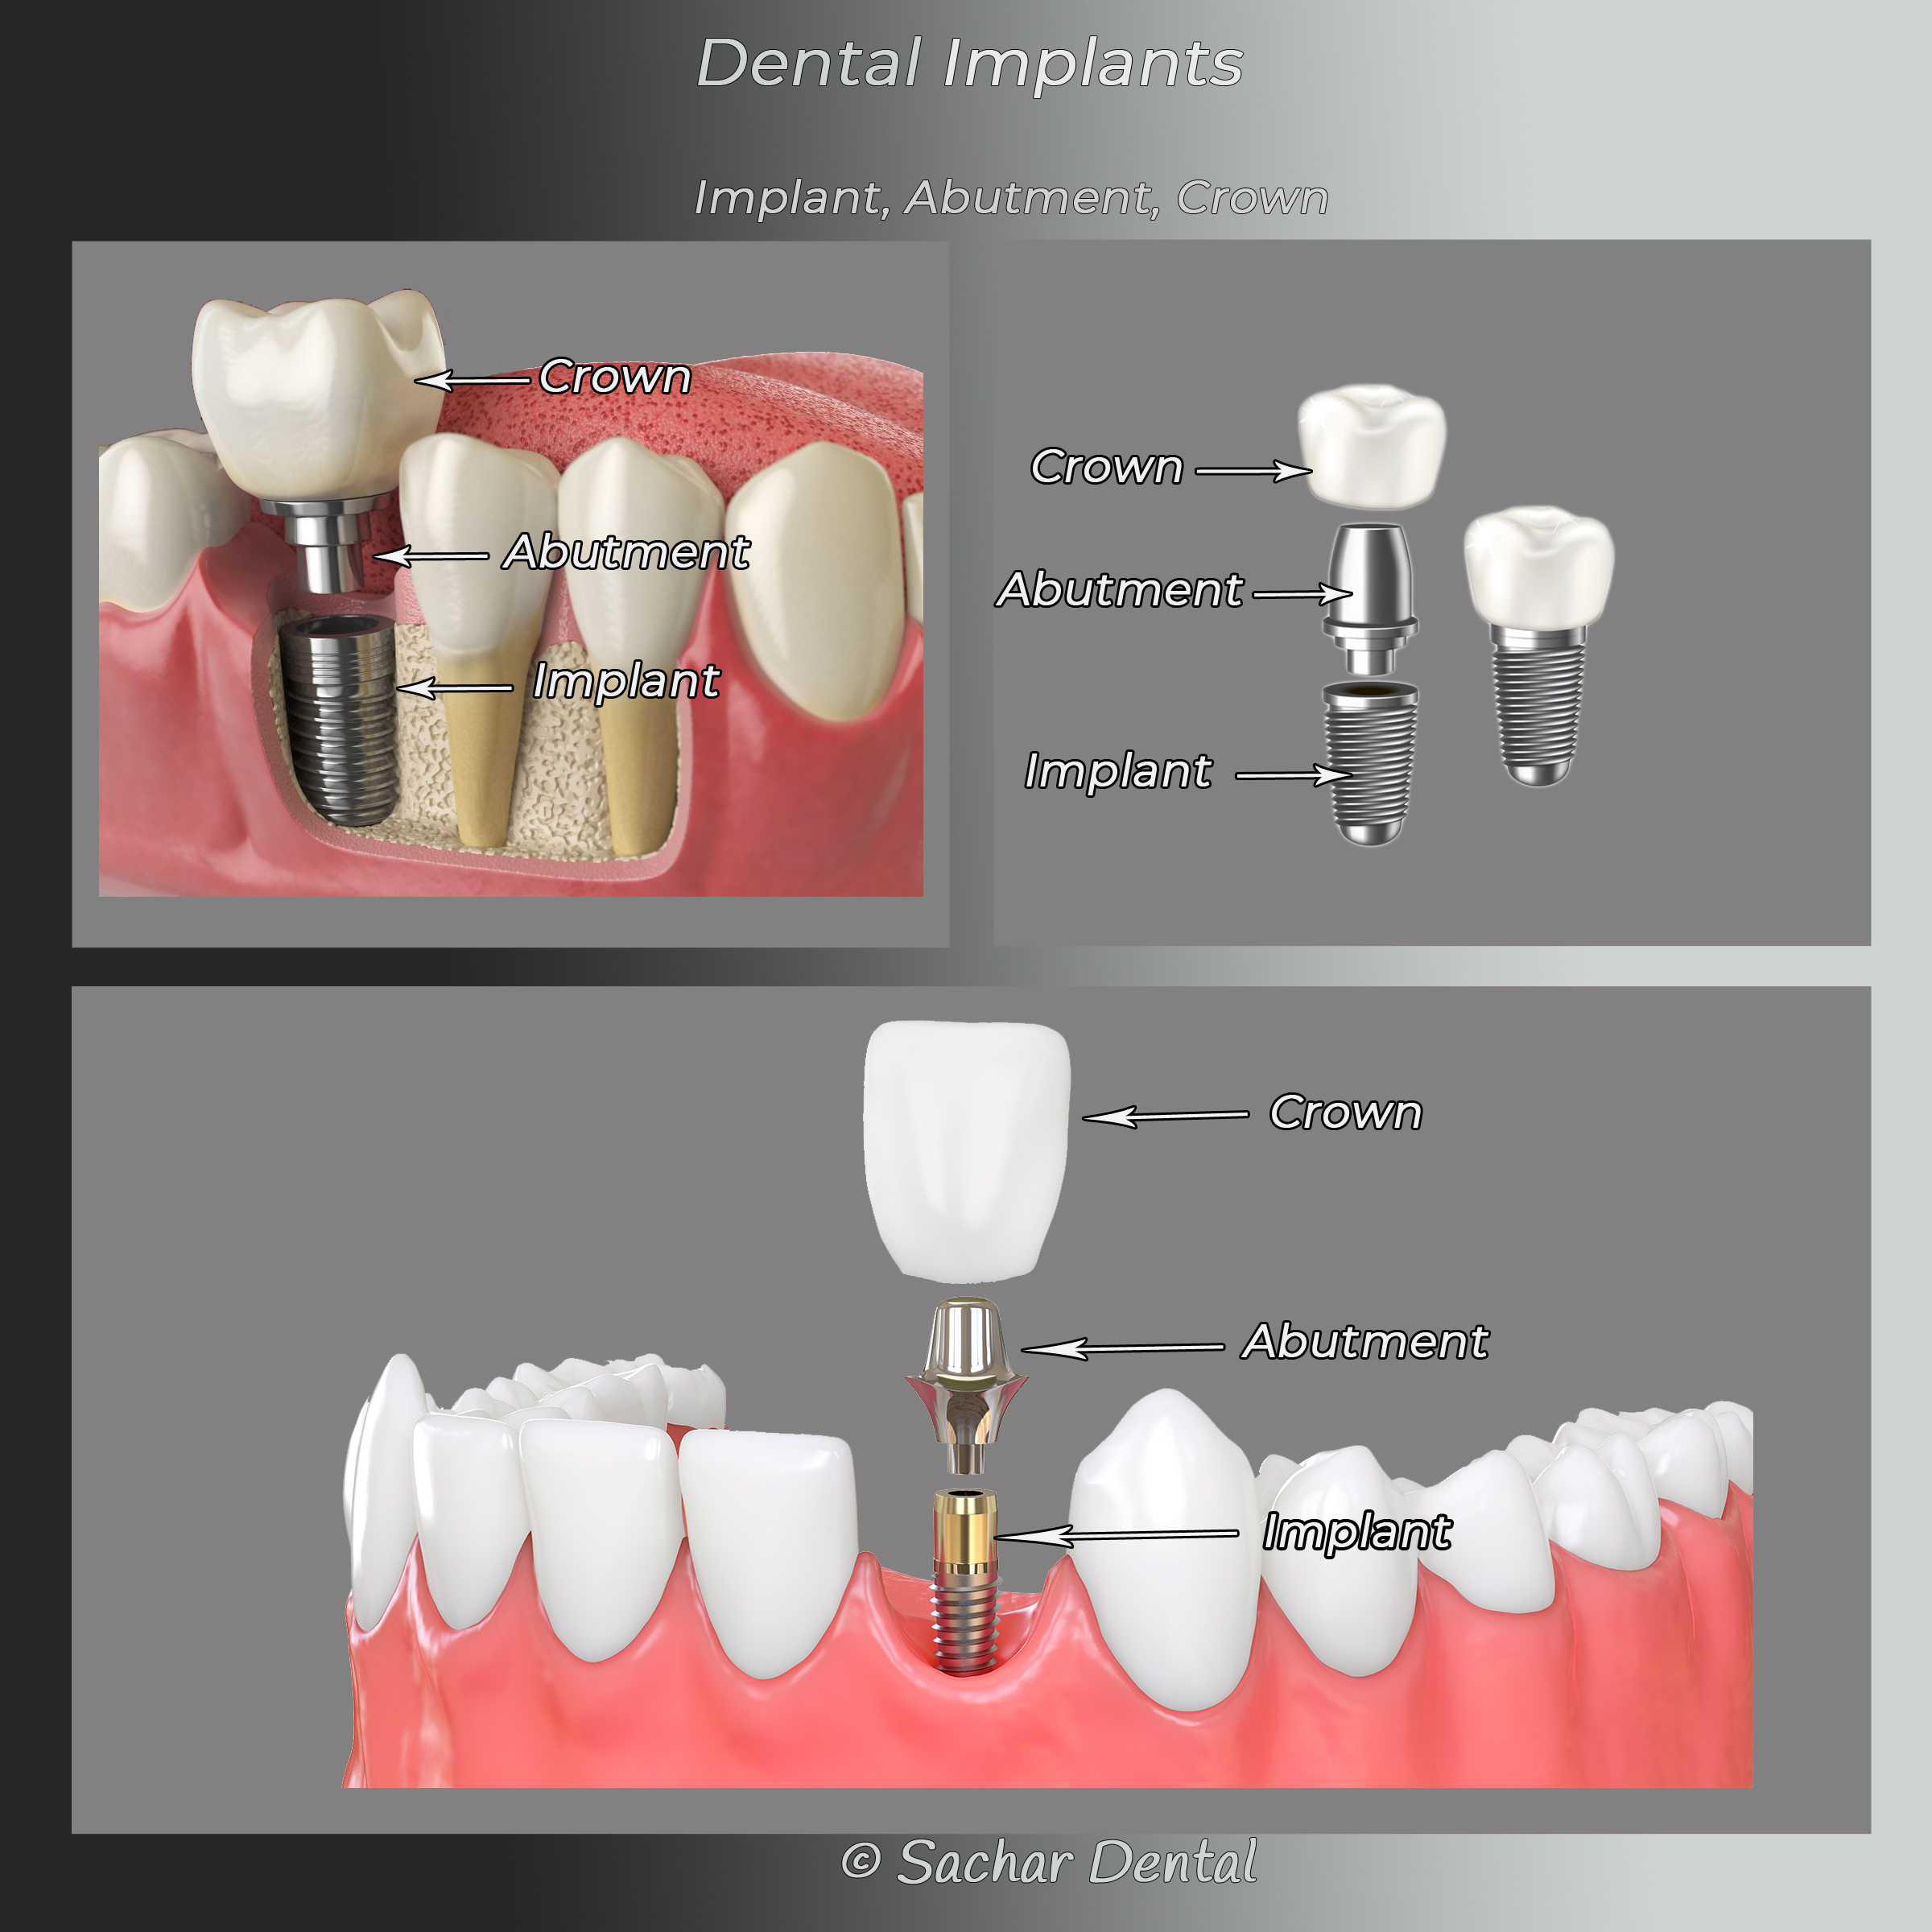 Picture of 3 diagrams showing dental implants abutments and crowns